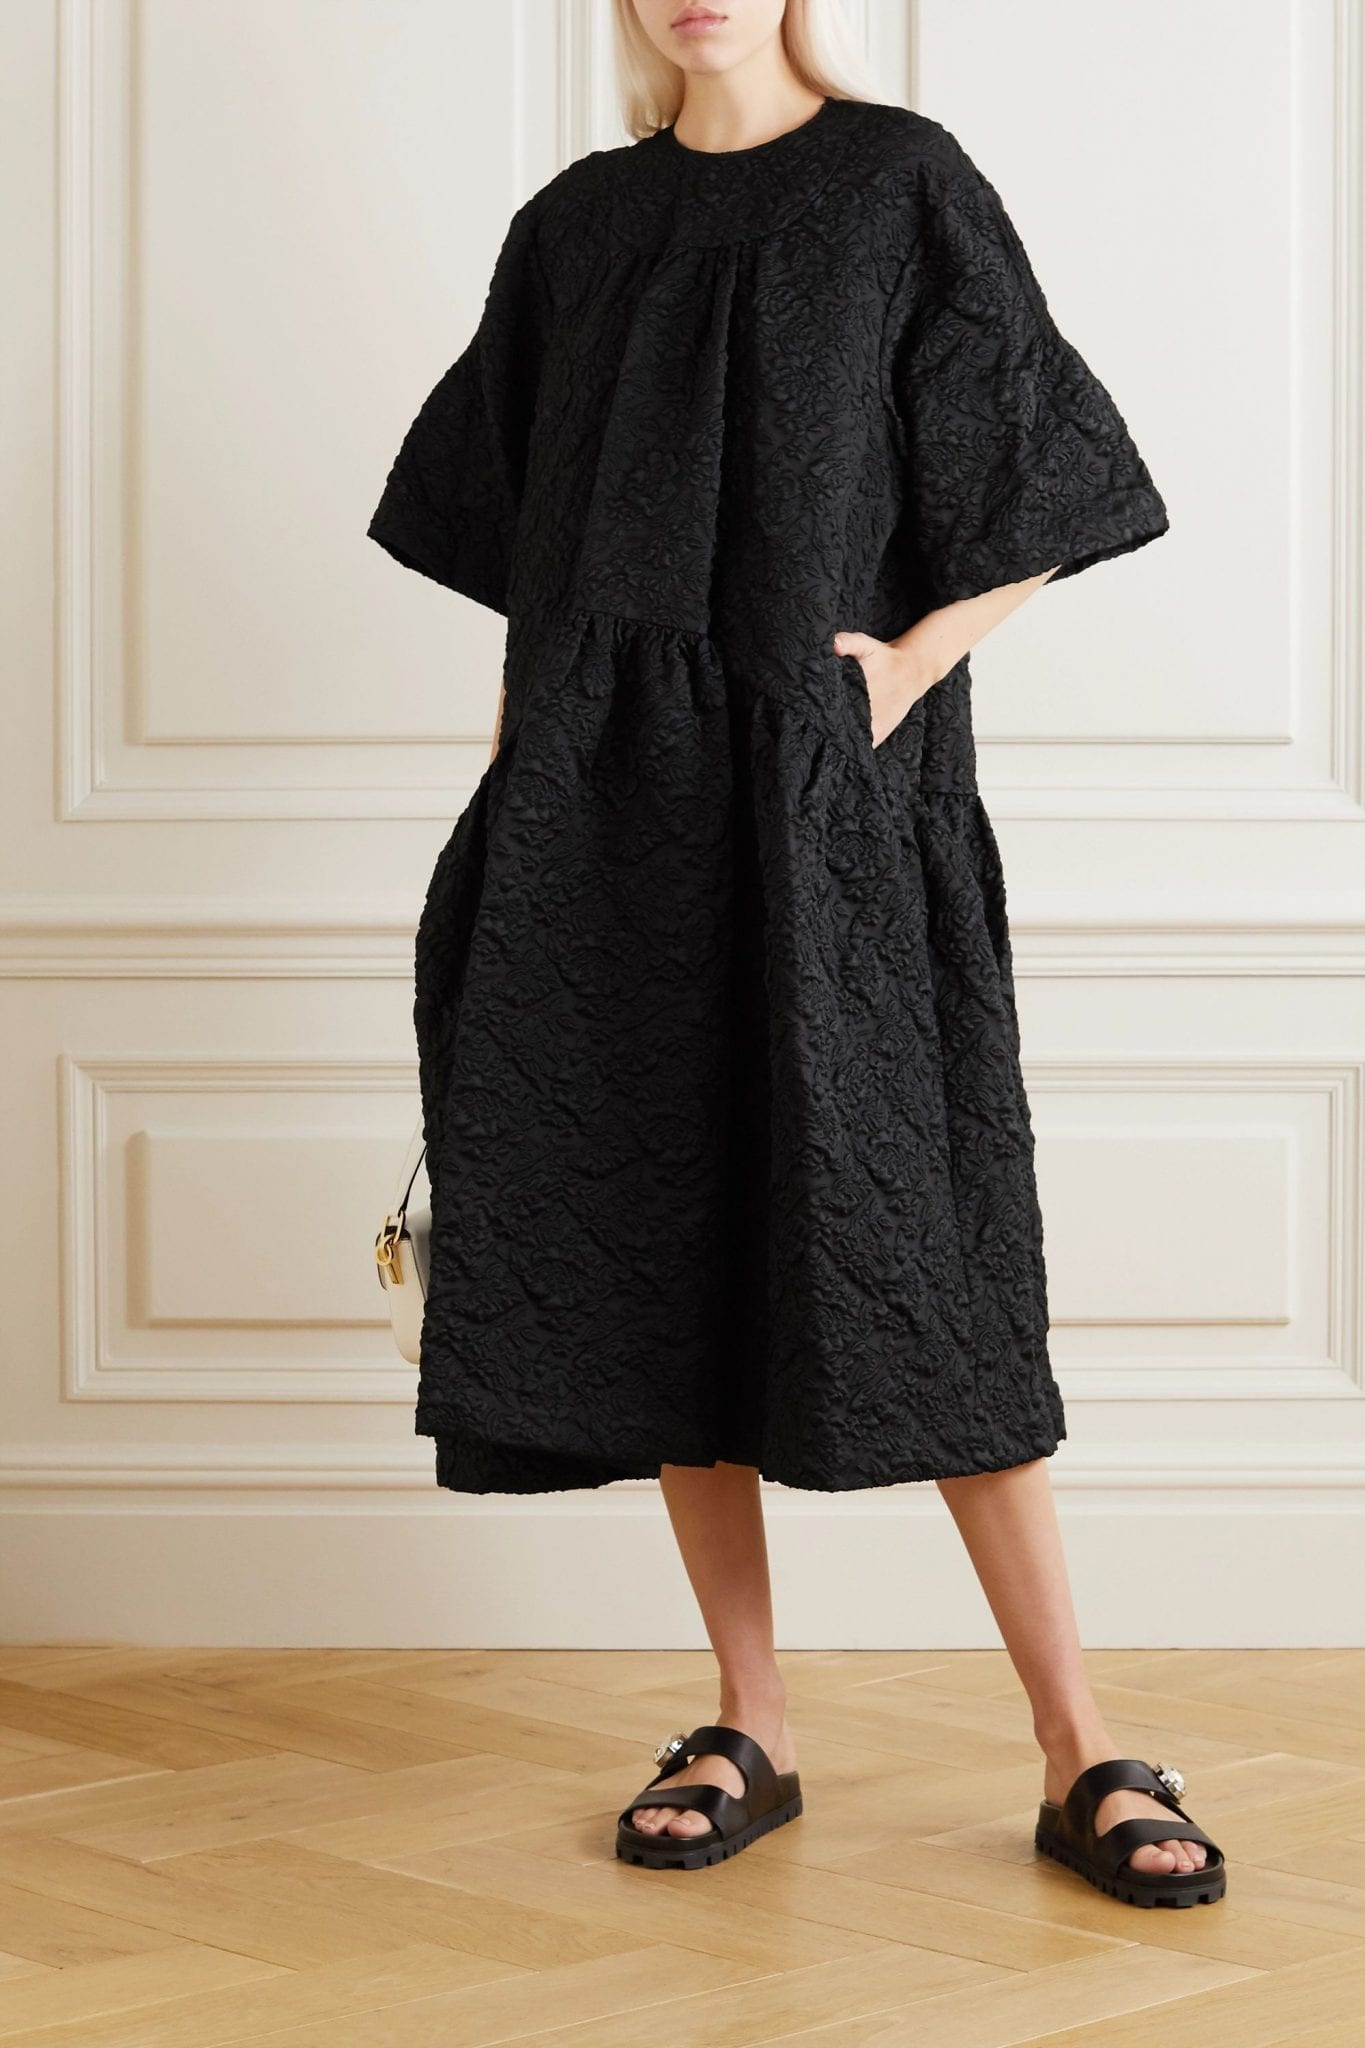 SIMONE ROCHA Oversized Tiered Cloqué Midi Dress